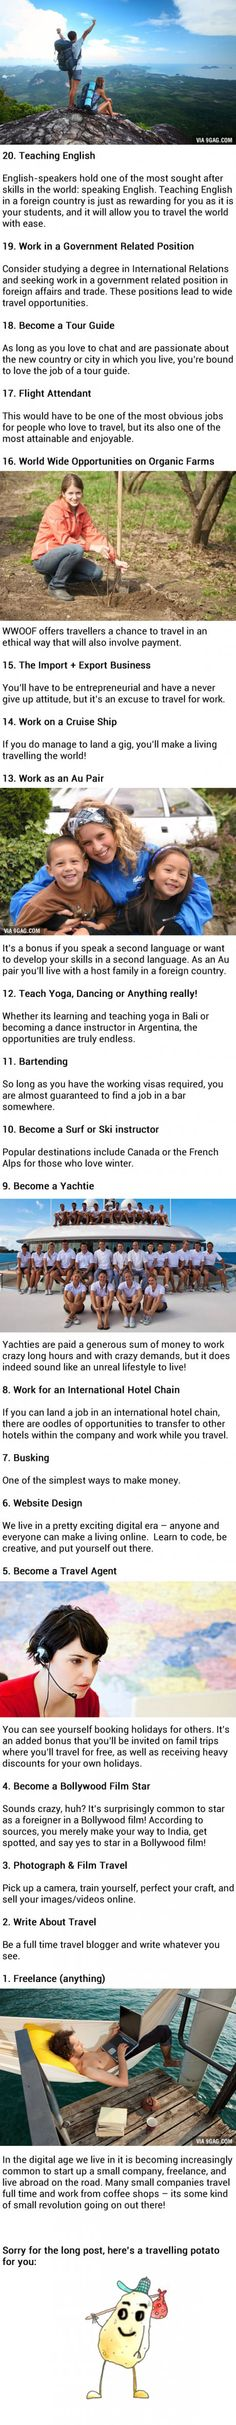 20 Great Jobs For People Who Love To Travel